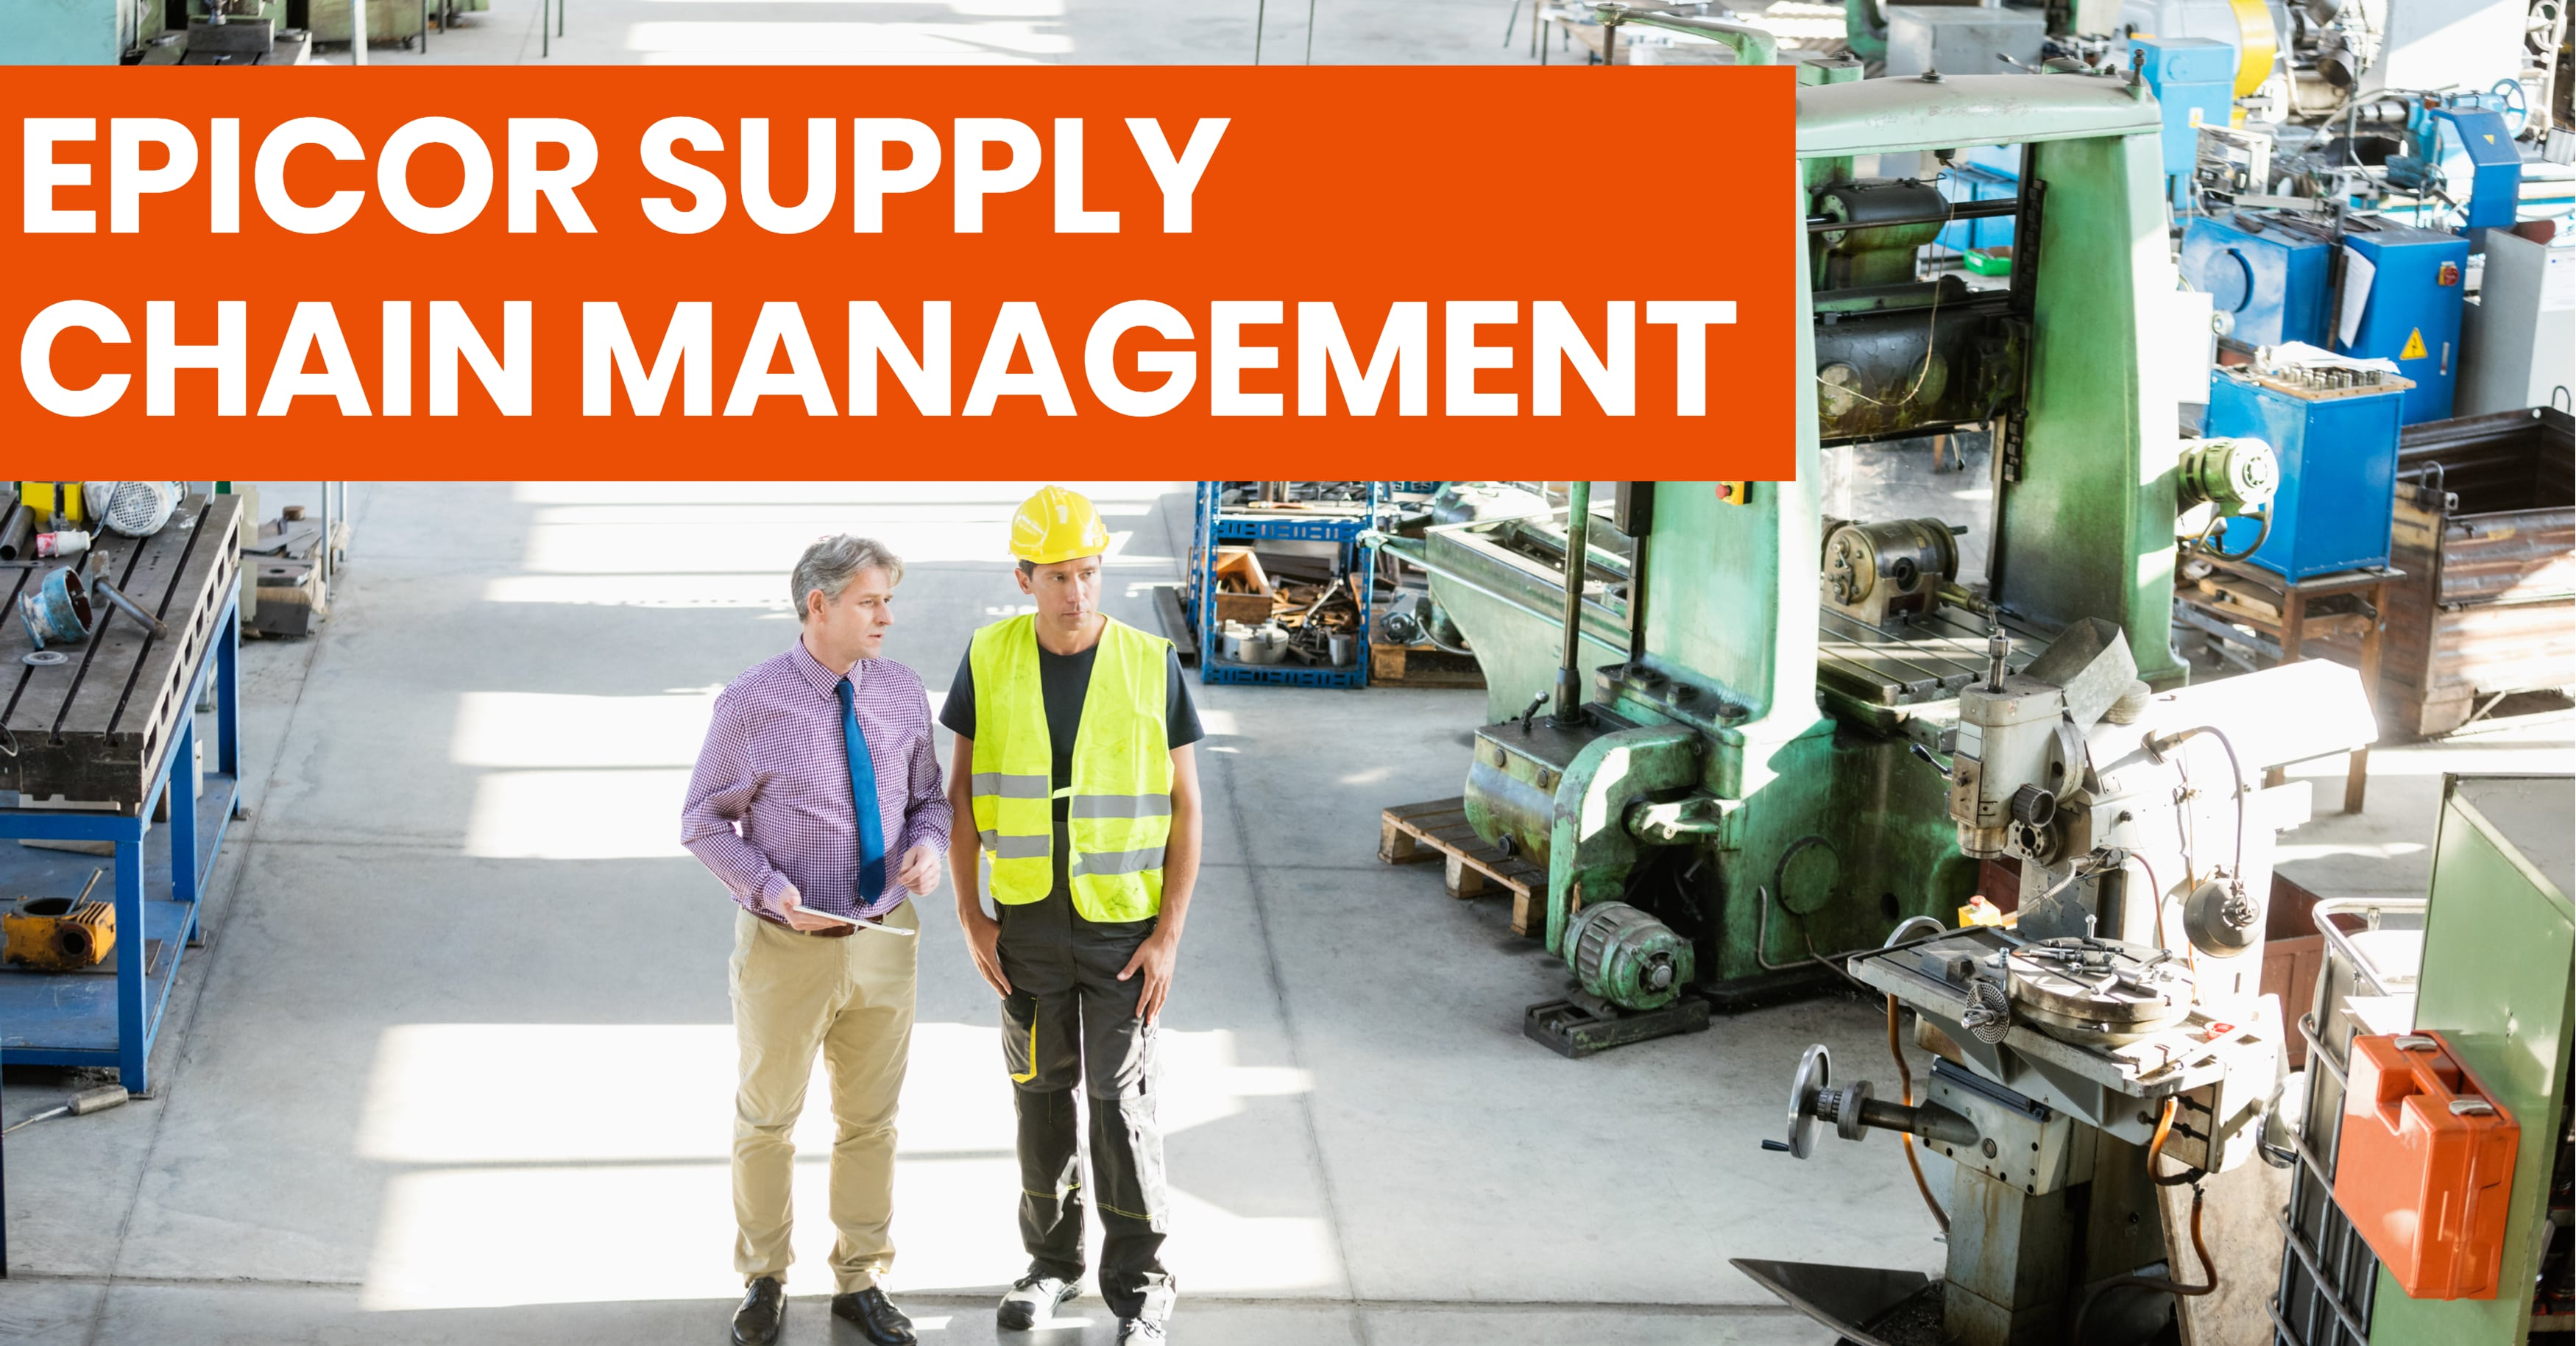 Epicor Supply Chain Management